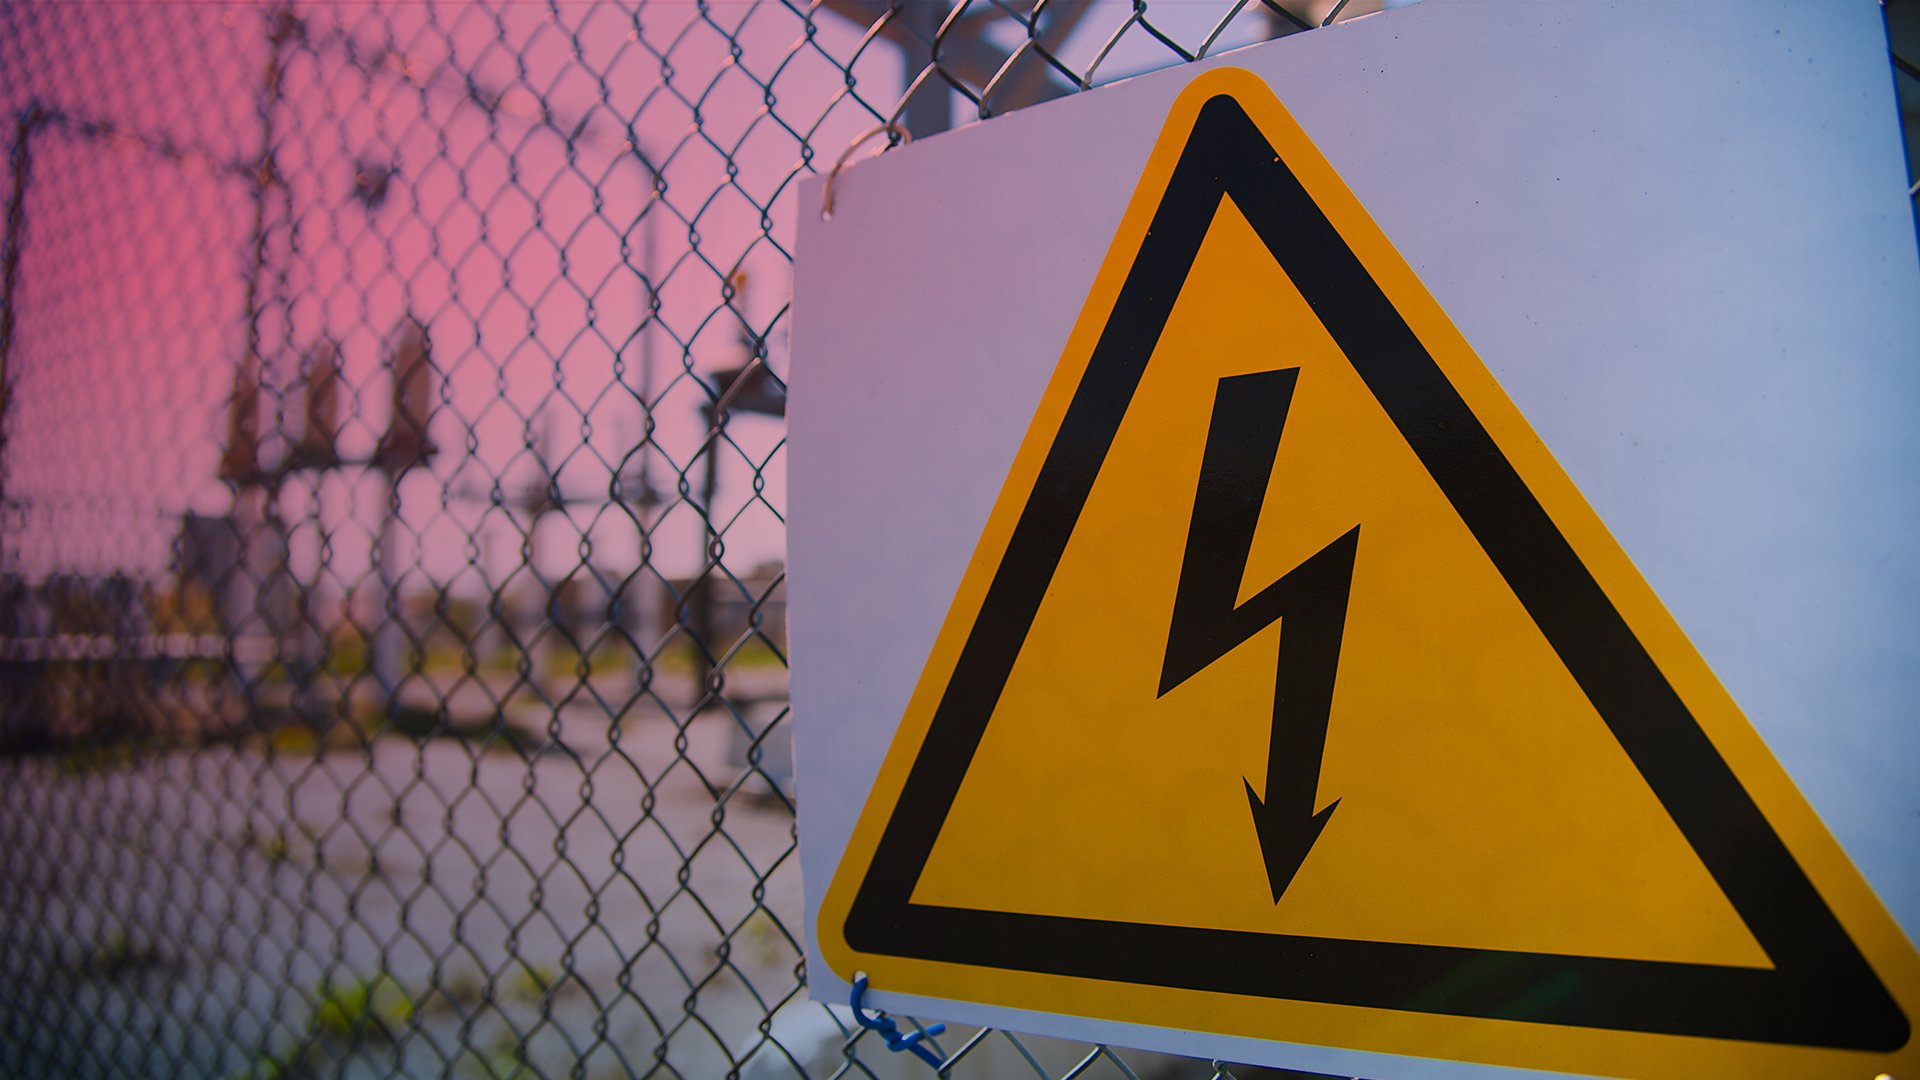 Arc Flash Hazards and Arc Resistant Equipment